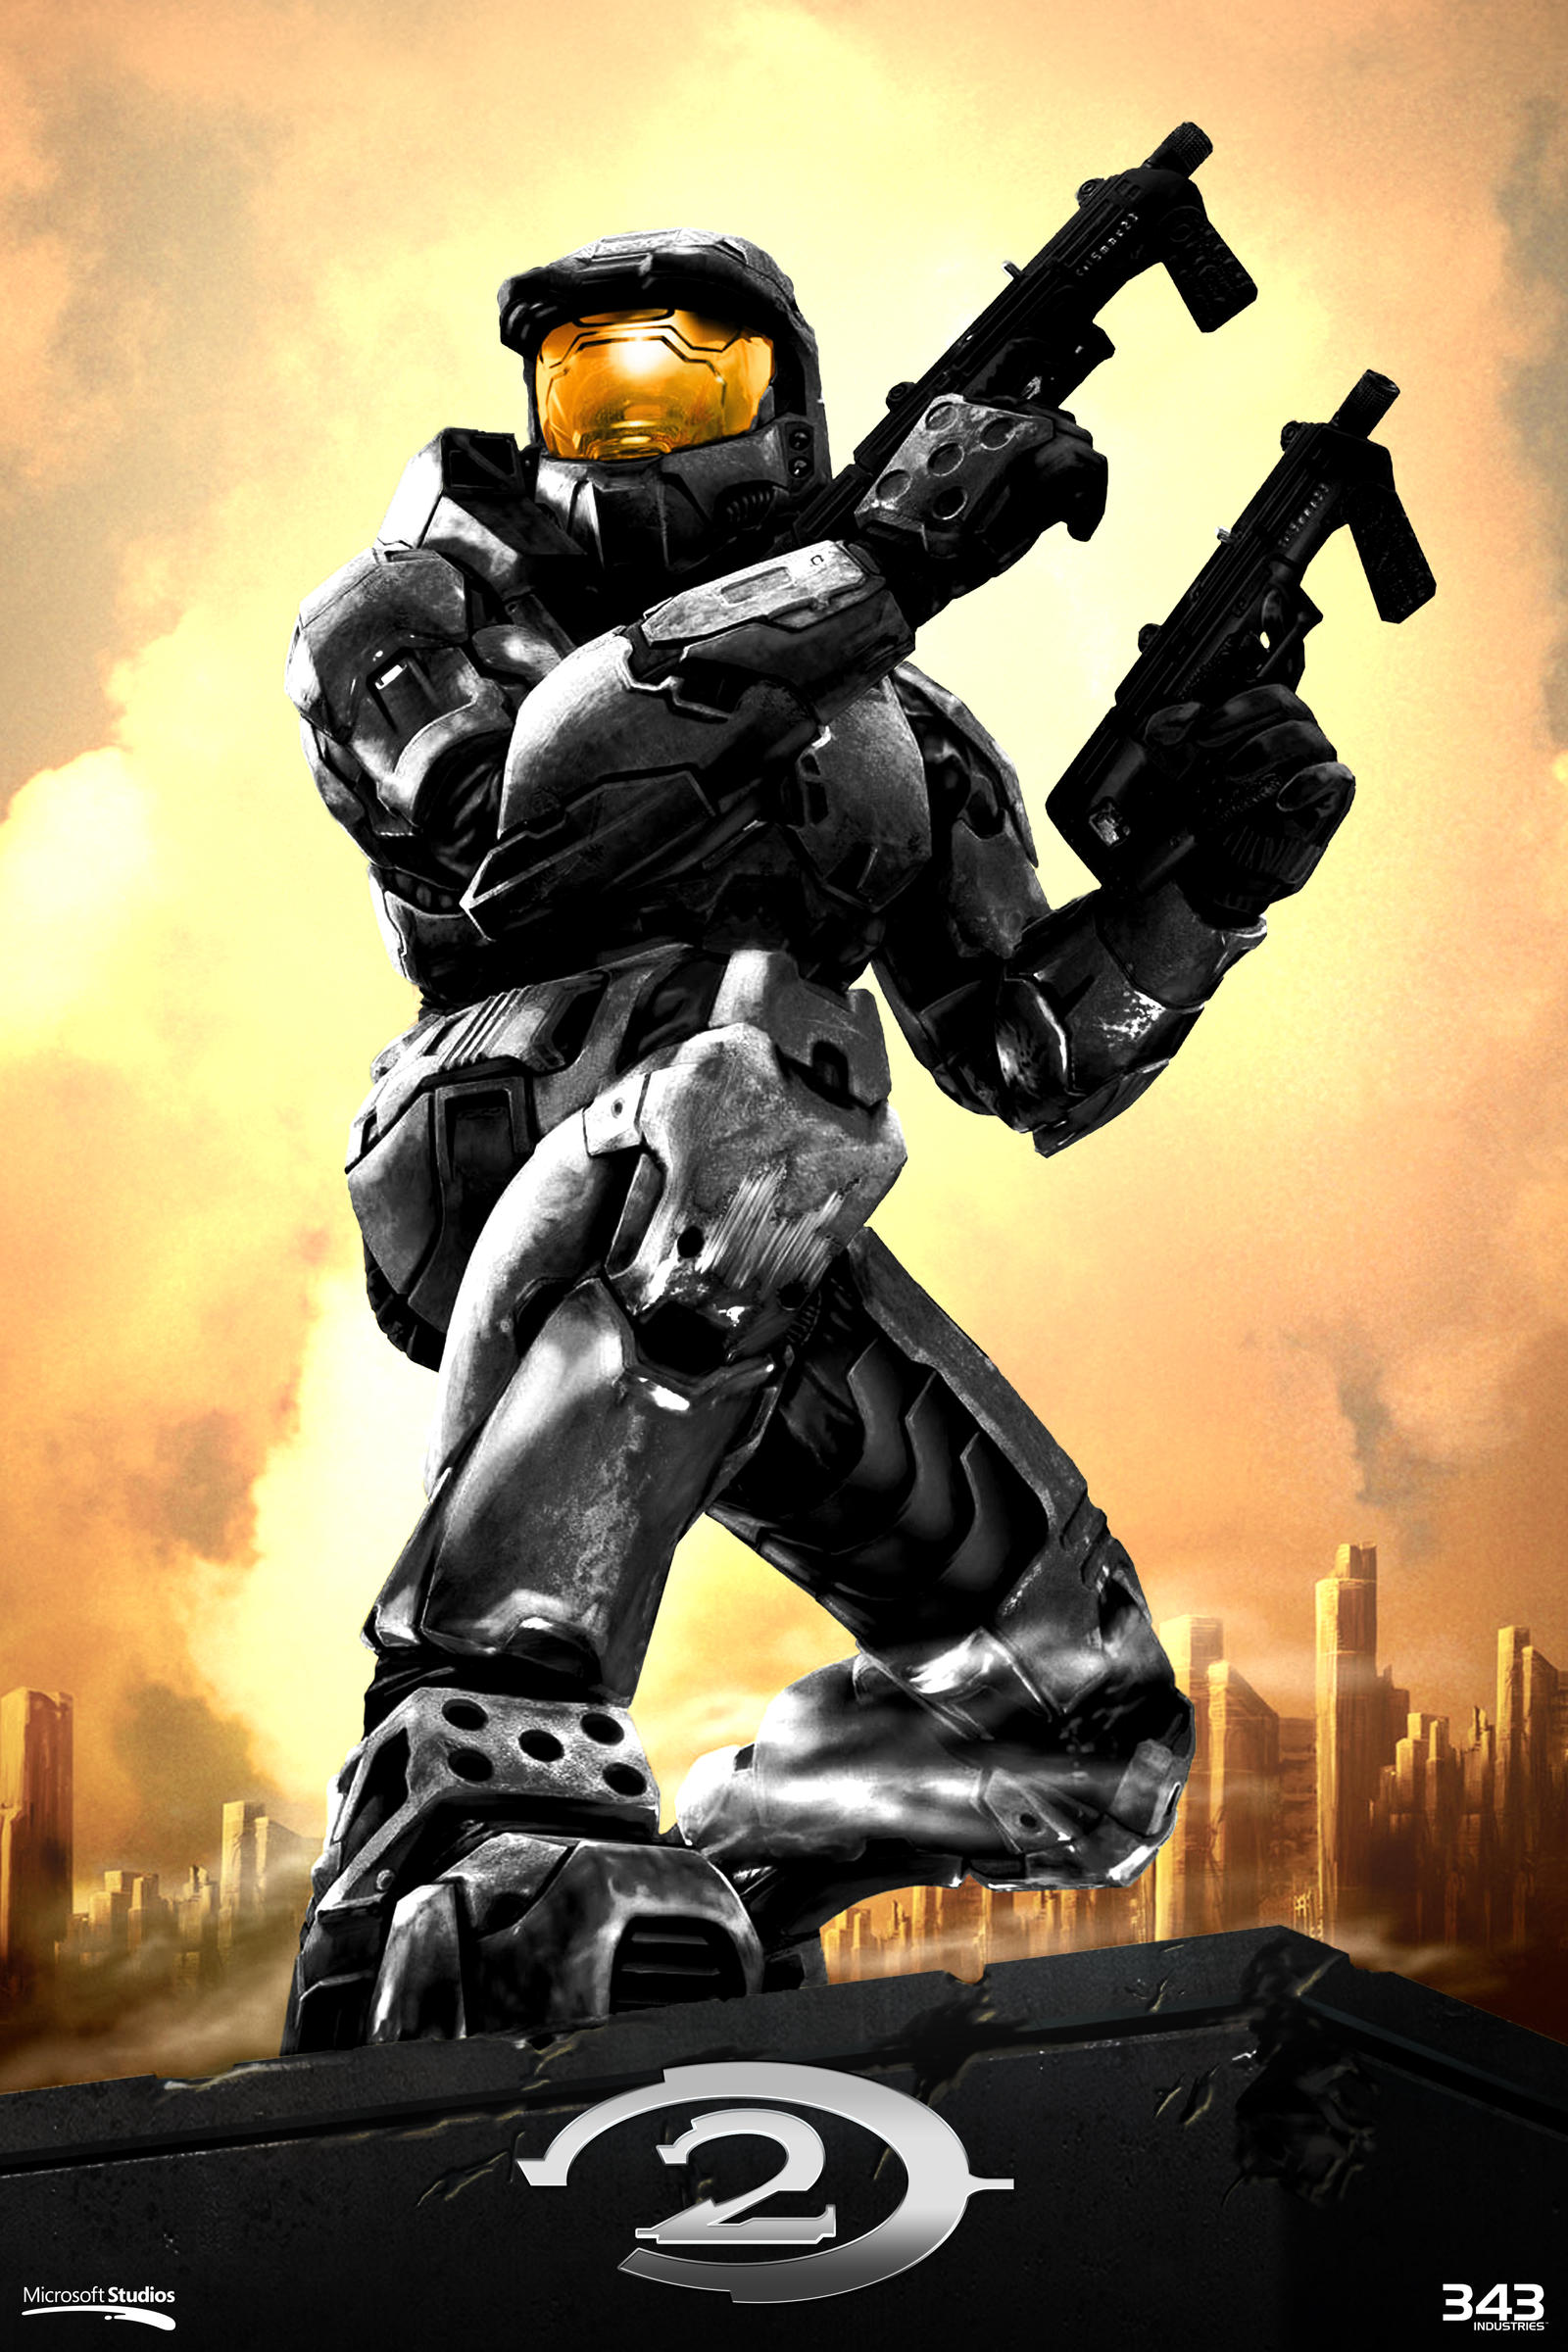 Halo 2 Poster Anniversary Style by SKCRISIS on DeviantArt